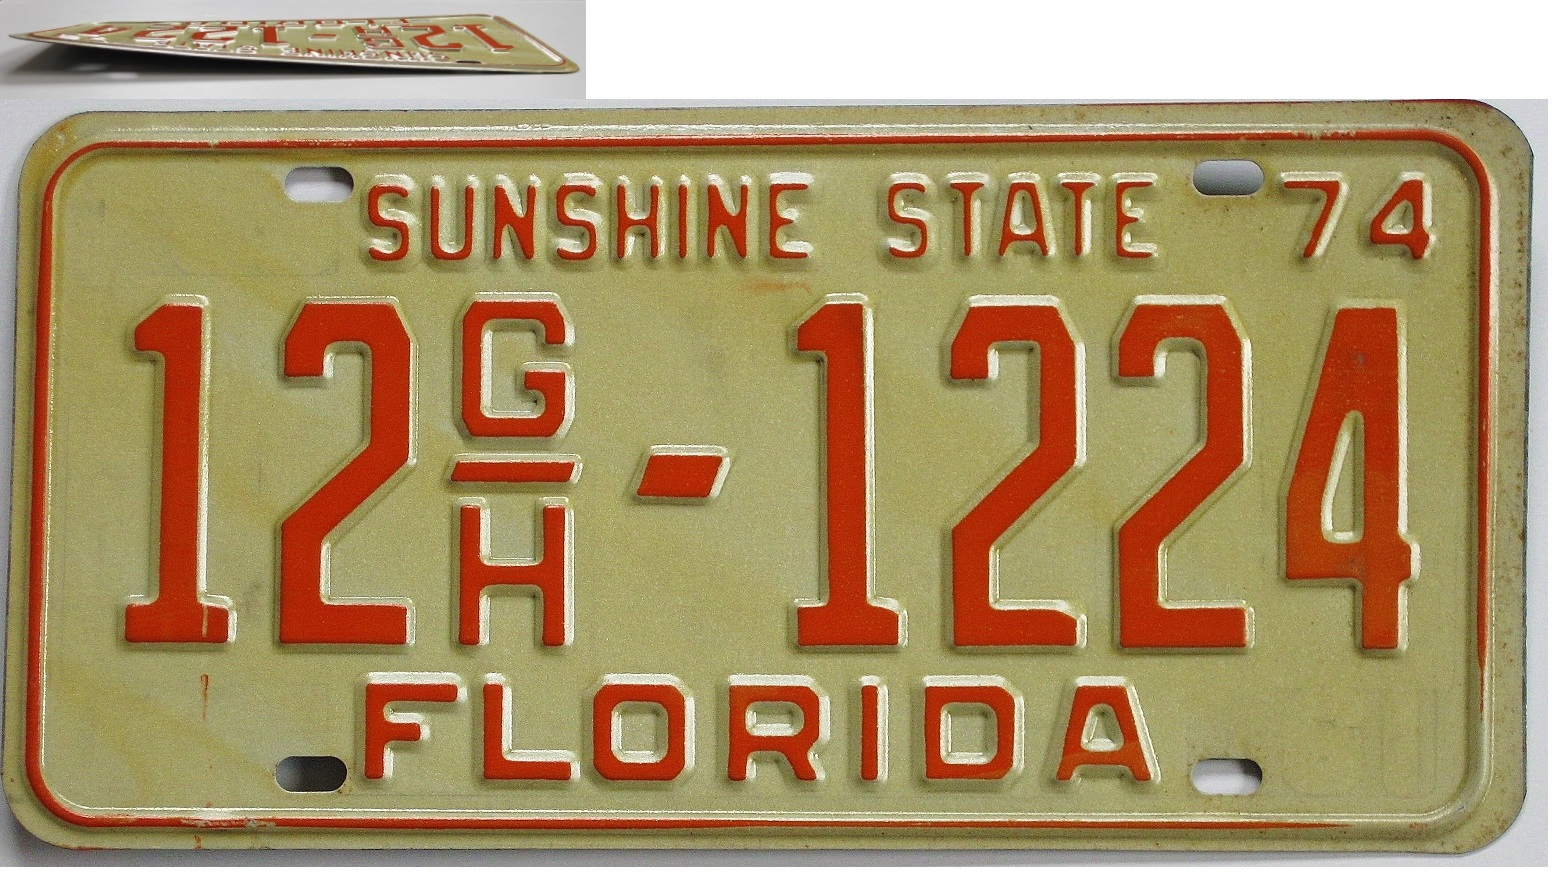 Old Florida license plate